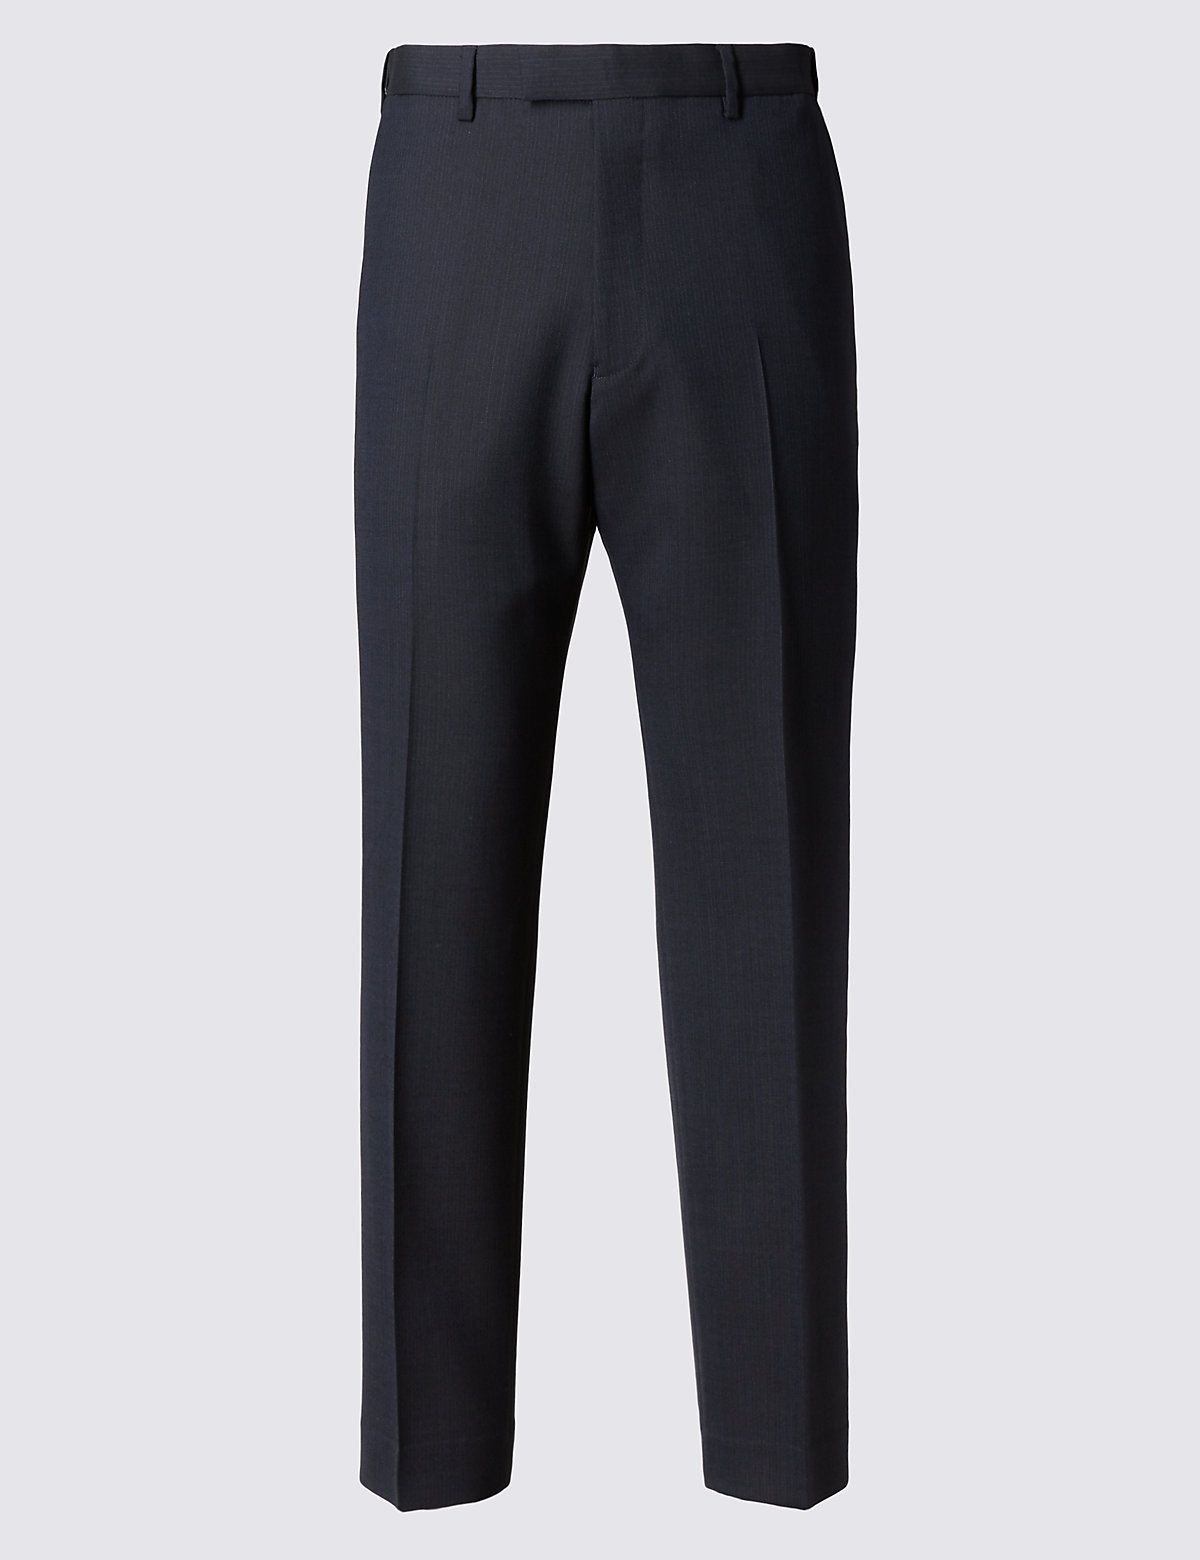 Marks & Spencer Navy Striped Slim Fit Trousers